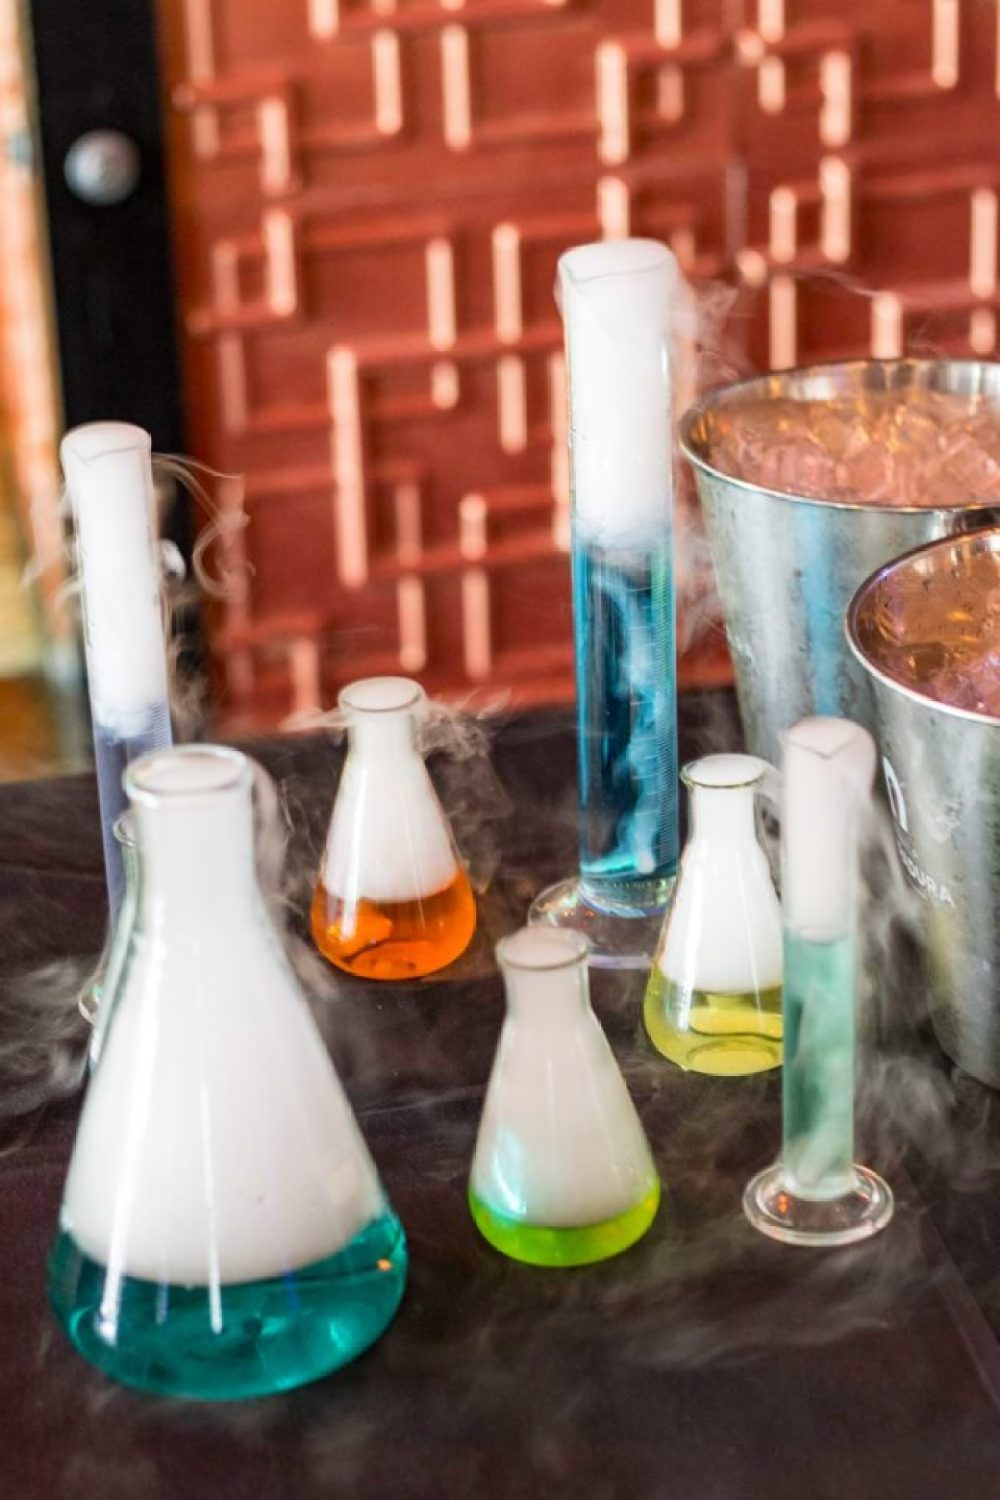 The Chemist, mixologist in Myrtle Beach